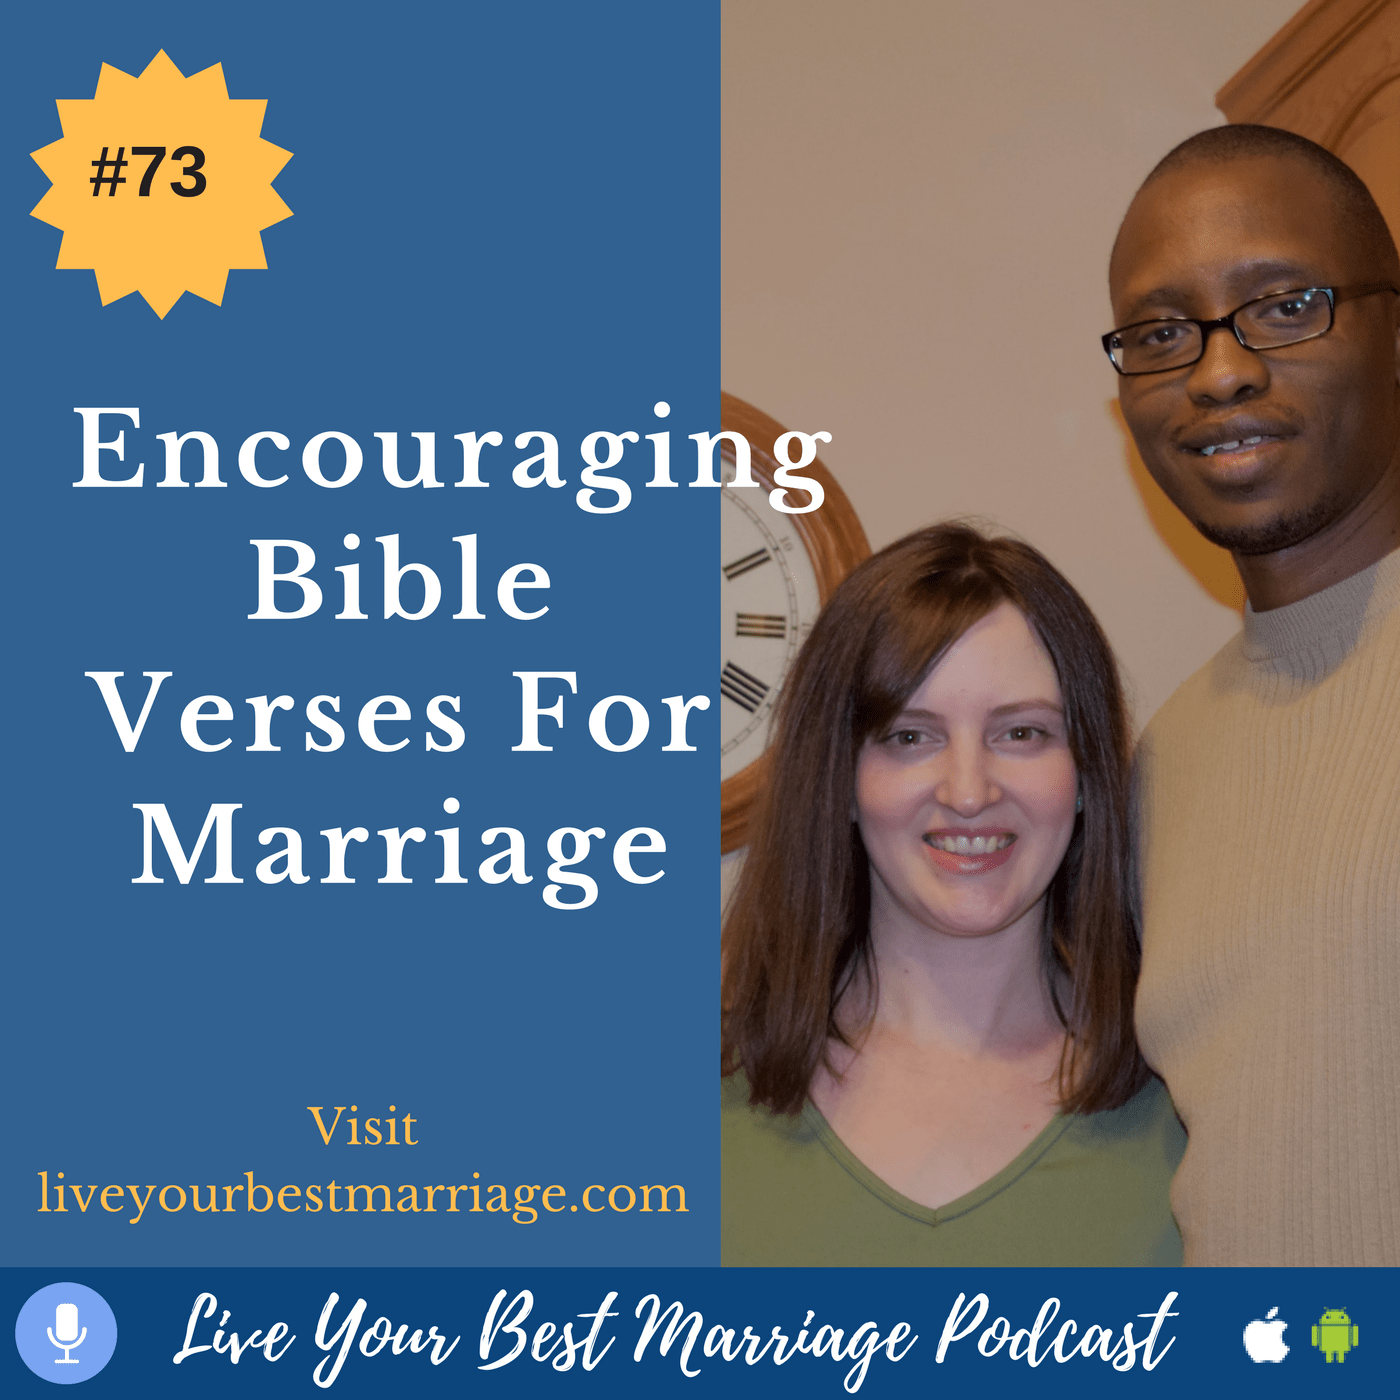 episode-73-encouraging-bible-verses-for-marriage-audio_thumbnail.png